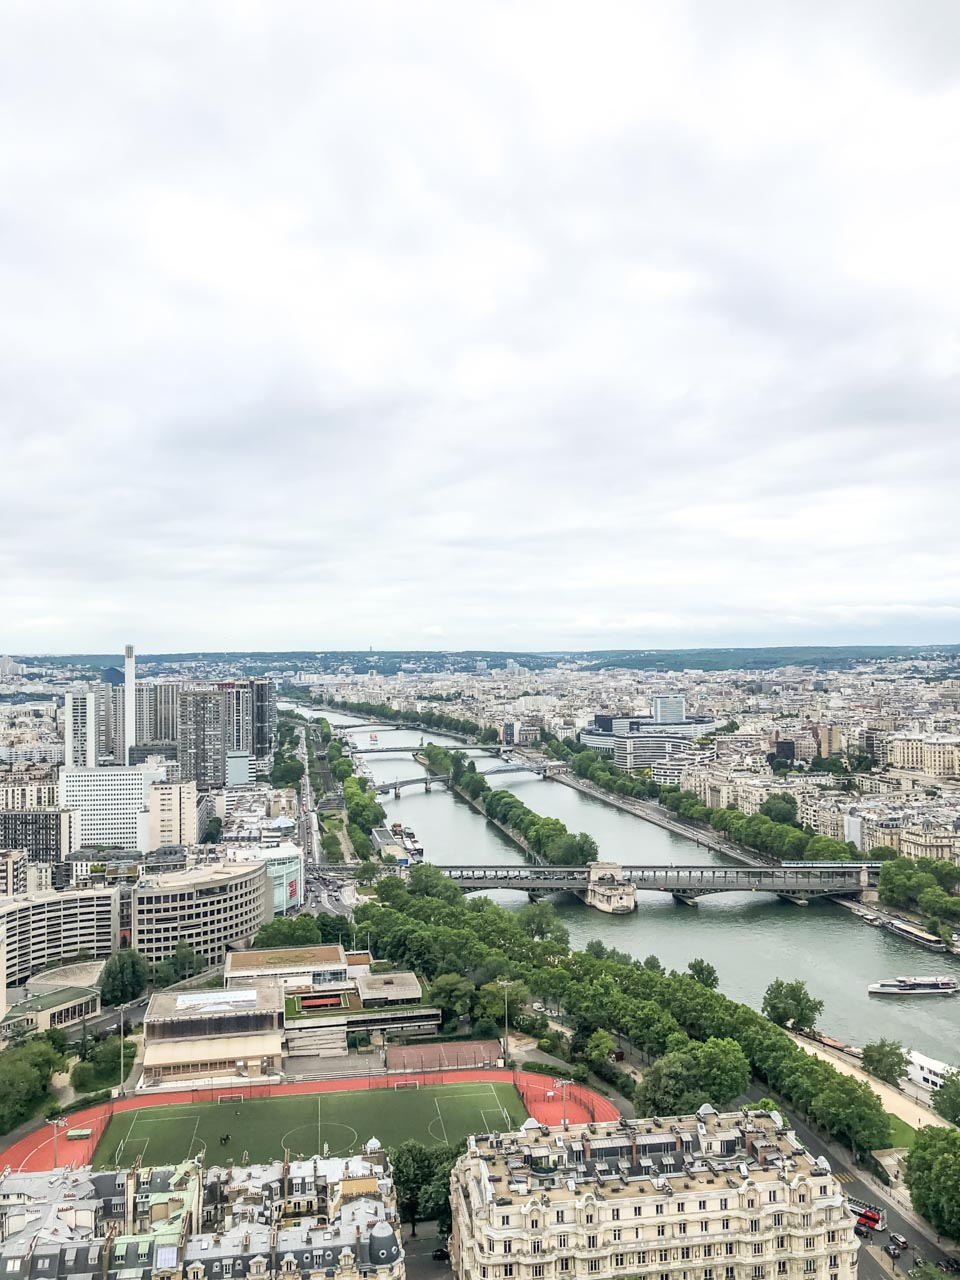 An aerial view of various bridges on the Seine River seen from the 2nd floor of the Eiffel Tower in Paris, France